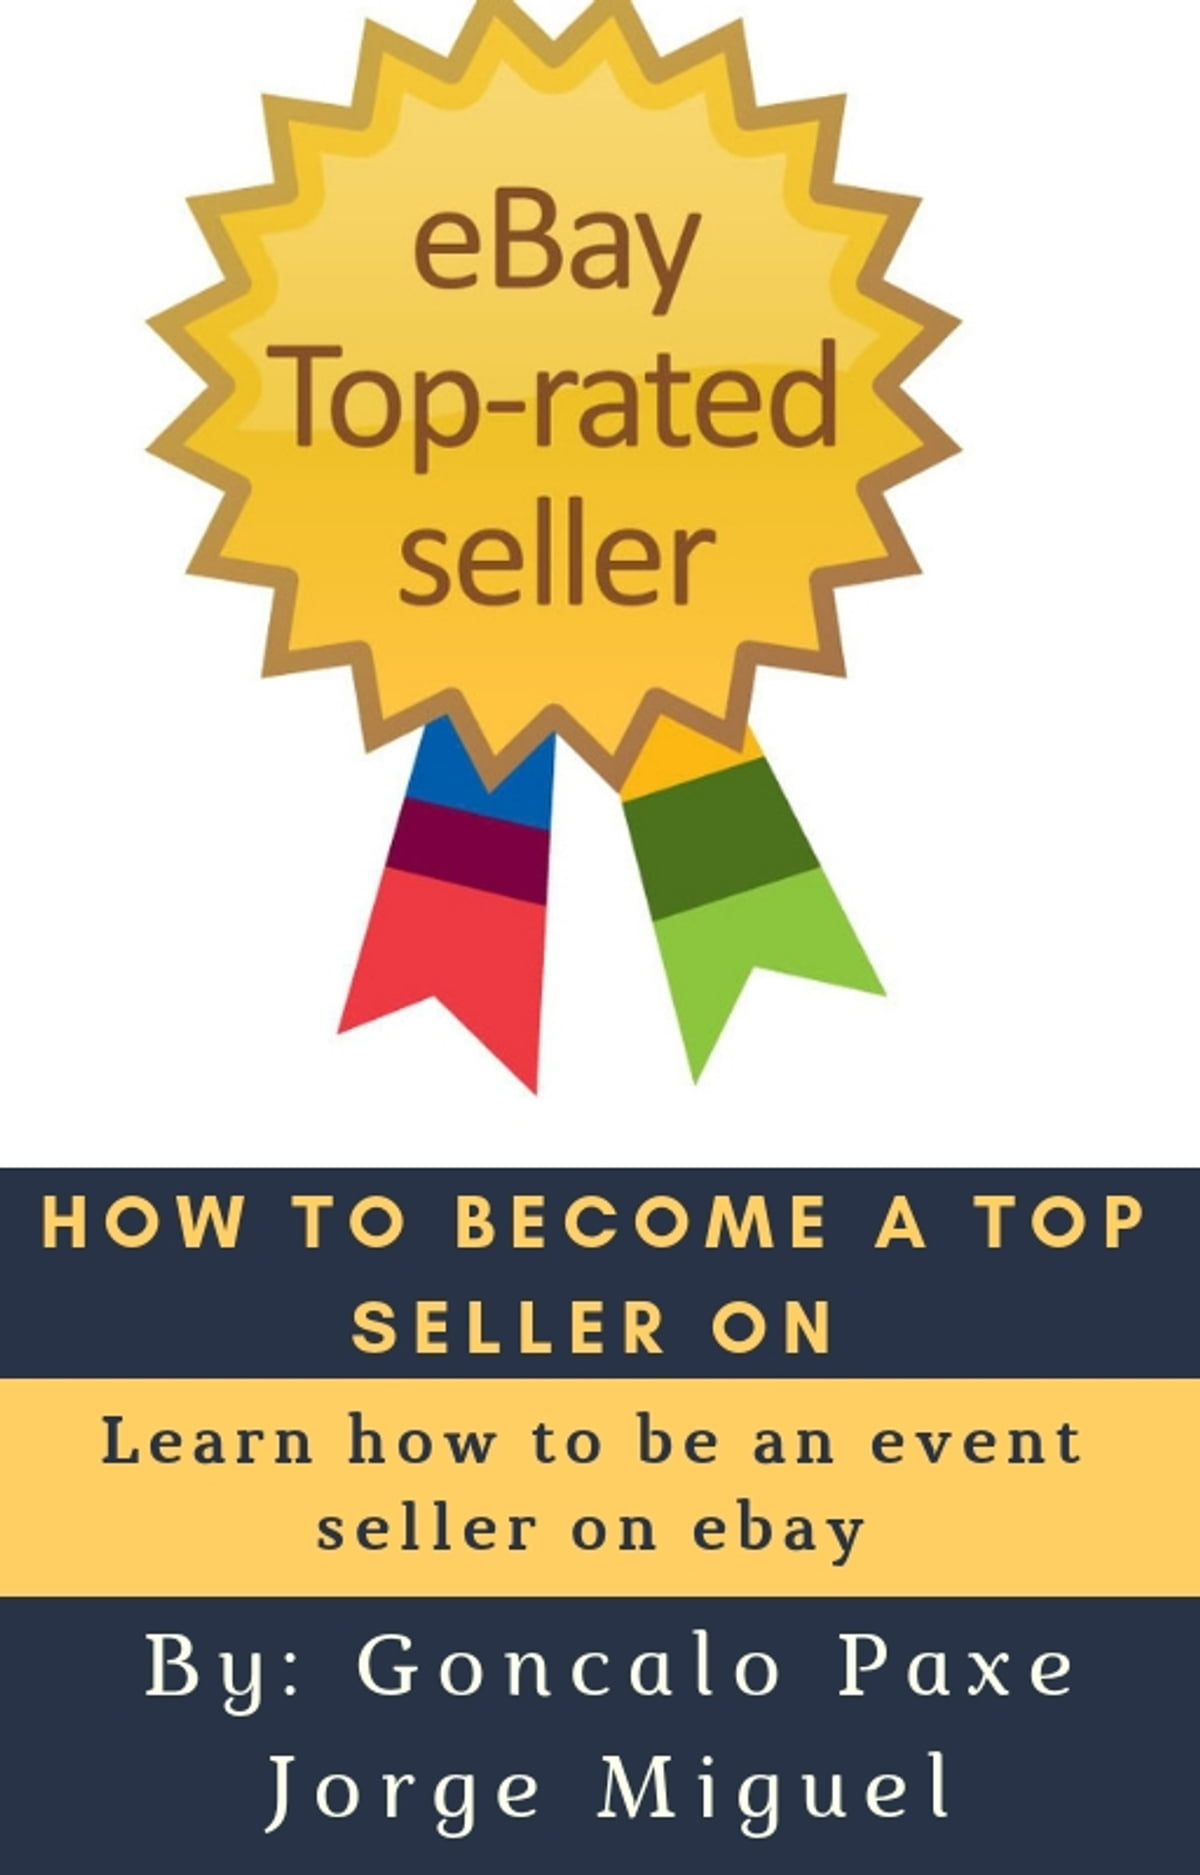 How To Become A Top Seller On Ebook By Goncalo Paxe Jorge Miguel 1230003052341 Rakuten Kobo United States